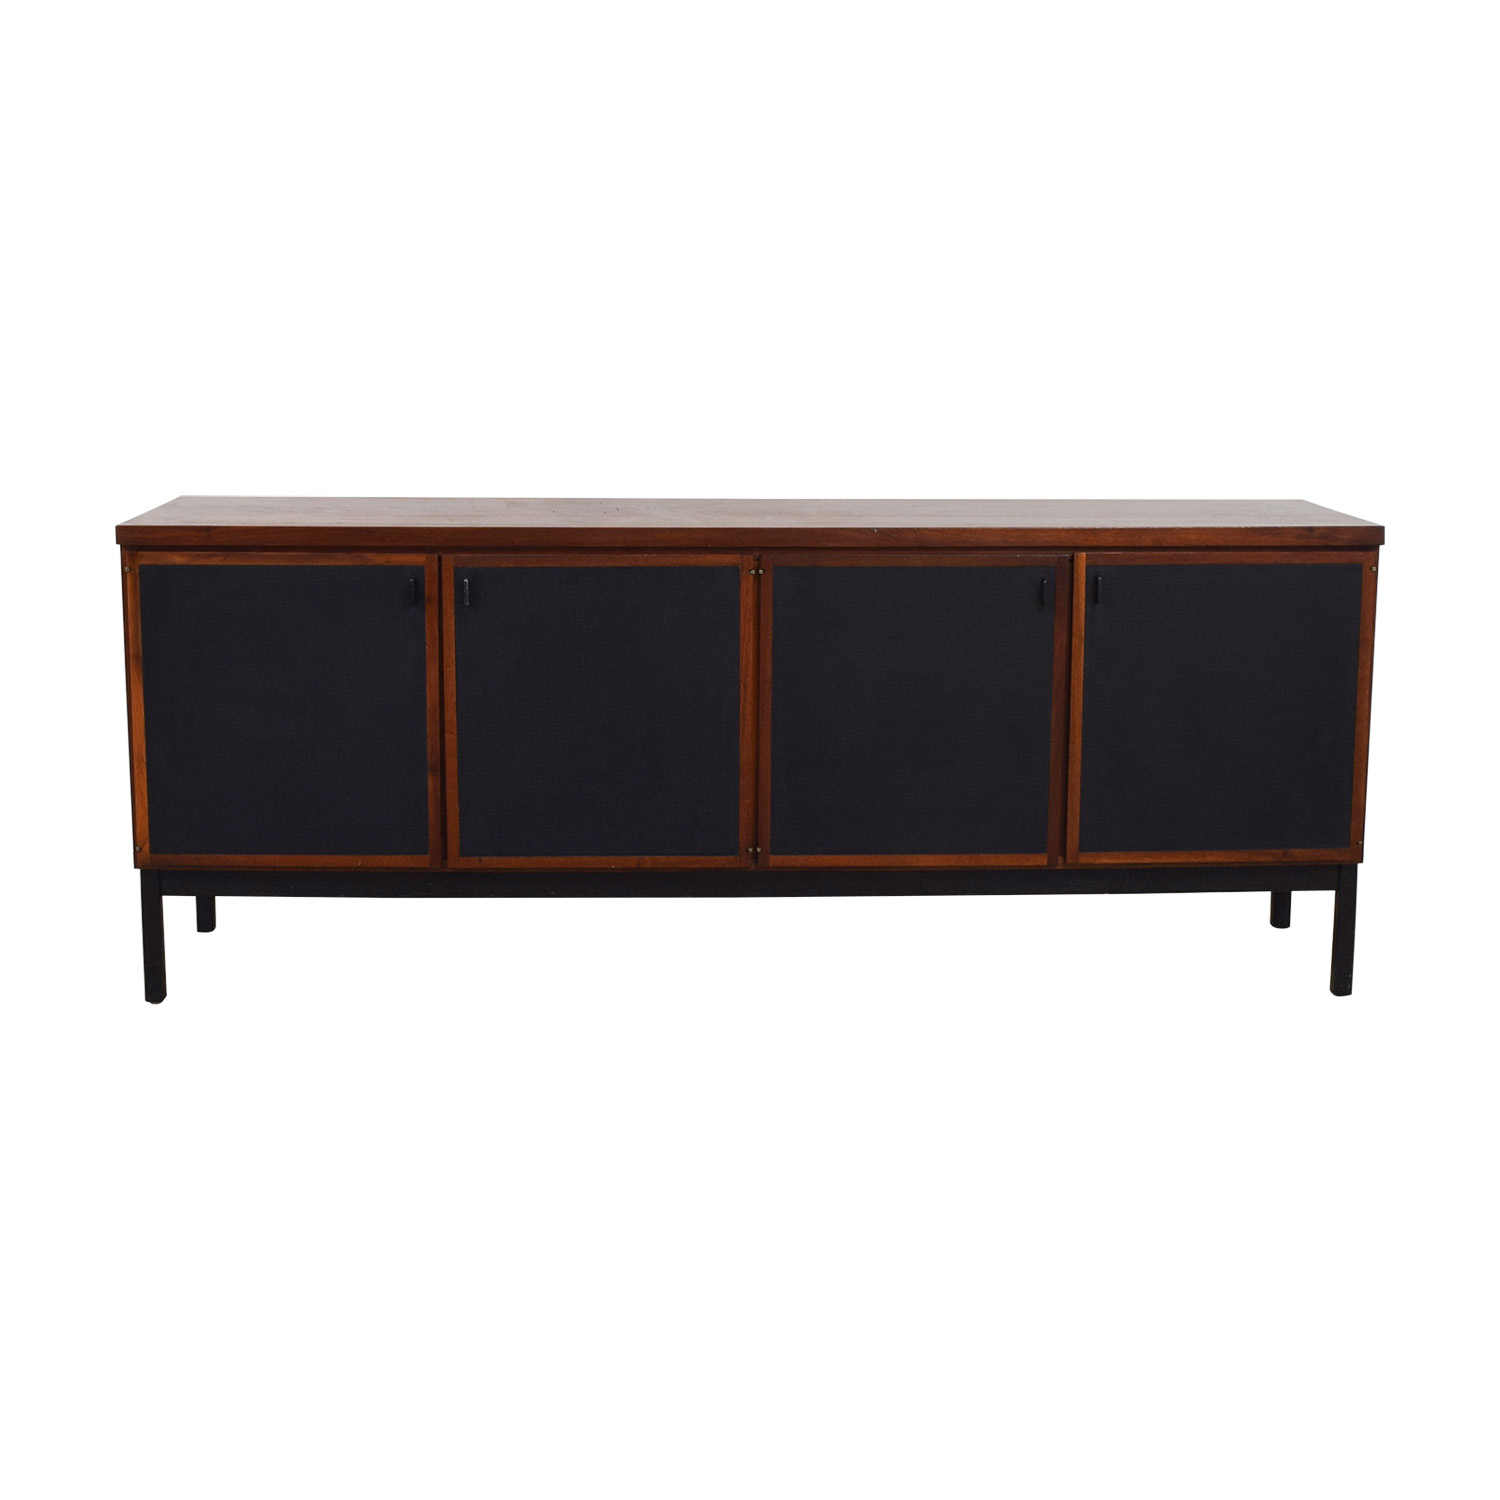 . 77  OFF   Mid Century Modern Cherry Wood and Black Leather Credenza    Storage